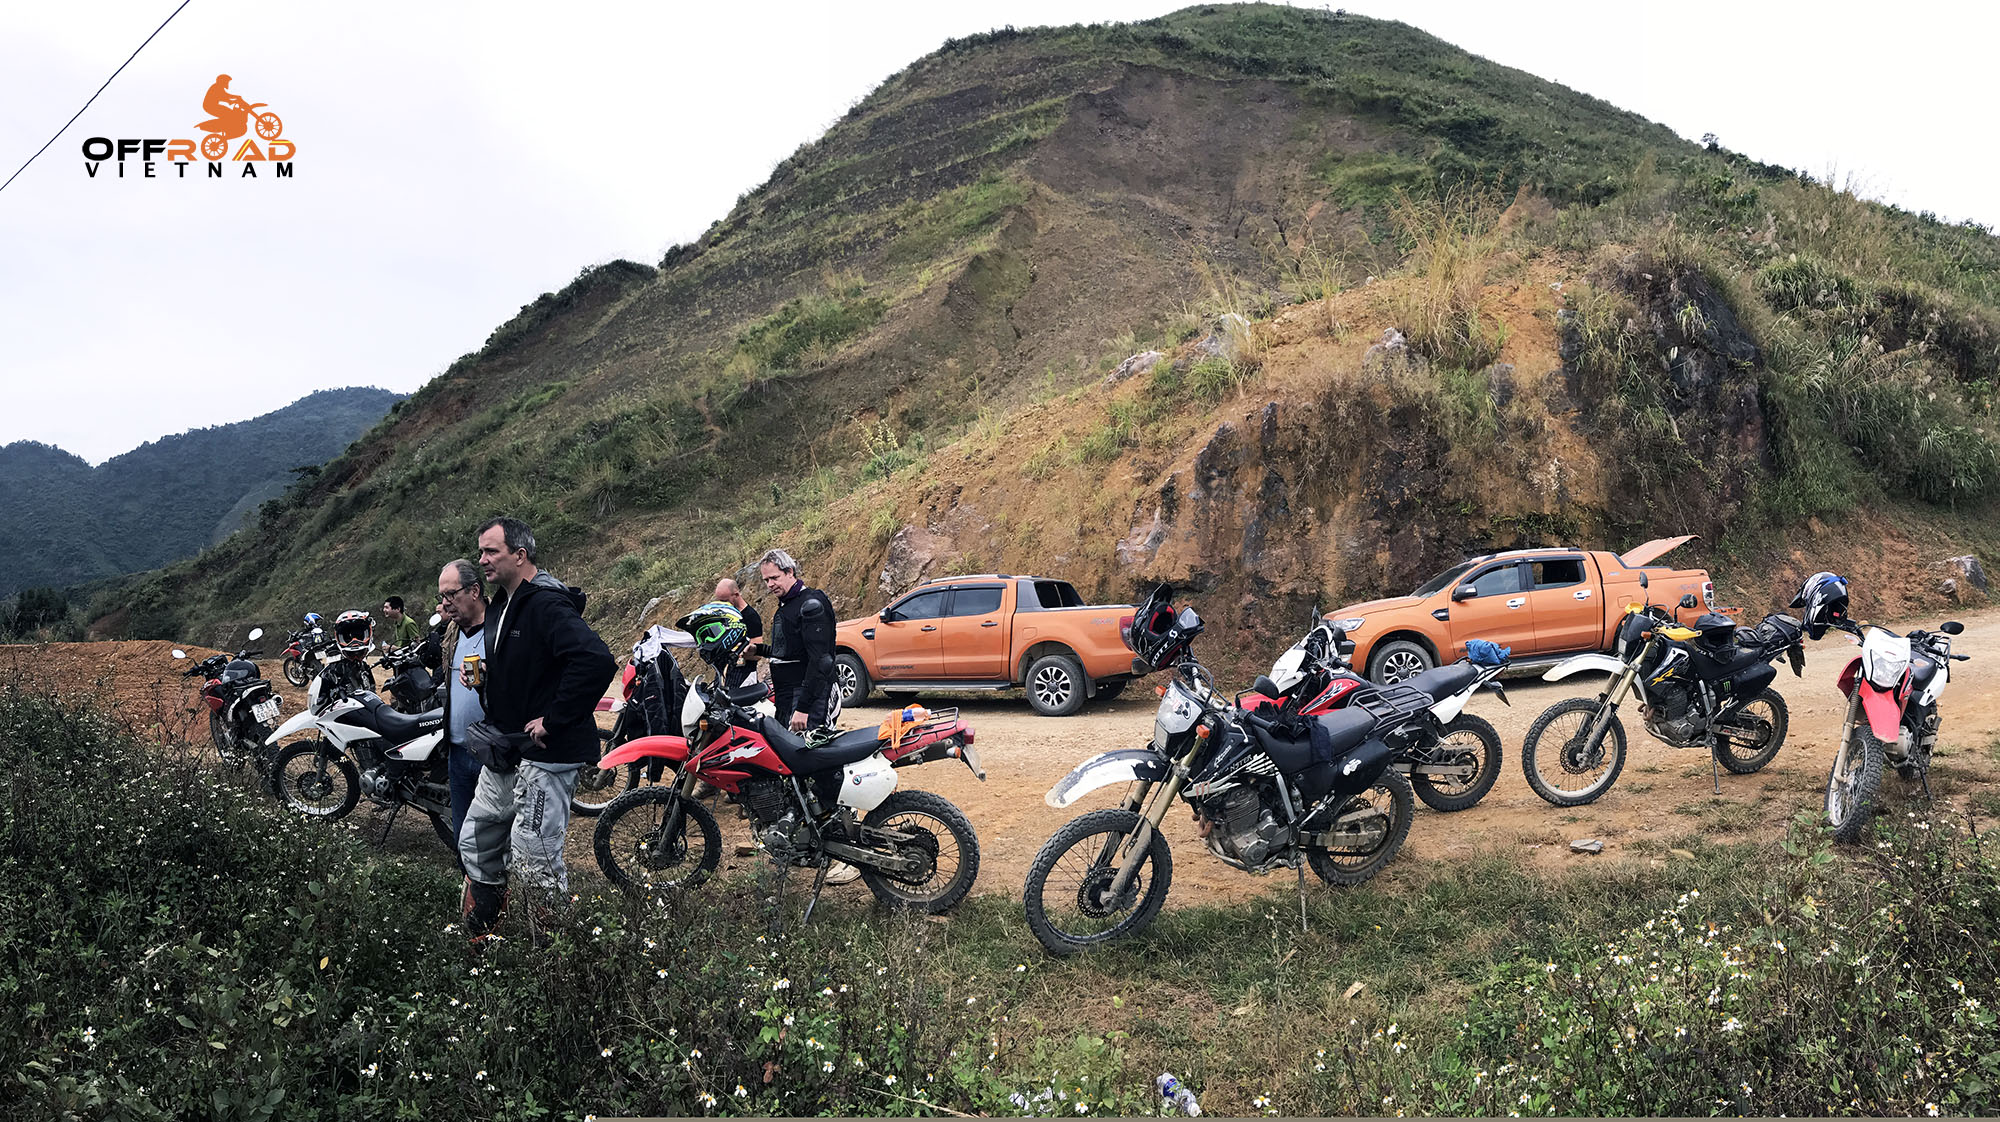 Vietnam Motorcycle Motorbike Tours provide wonderful guided motorbike tours and super reliable motorcycle rentals in Hanoi by Japanese Honda 50-250cc.